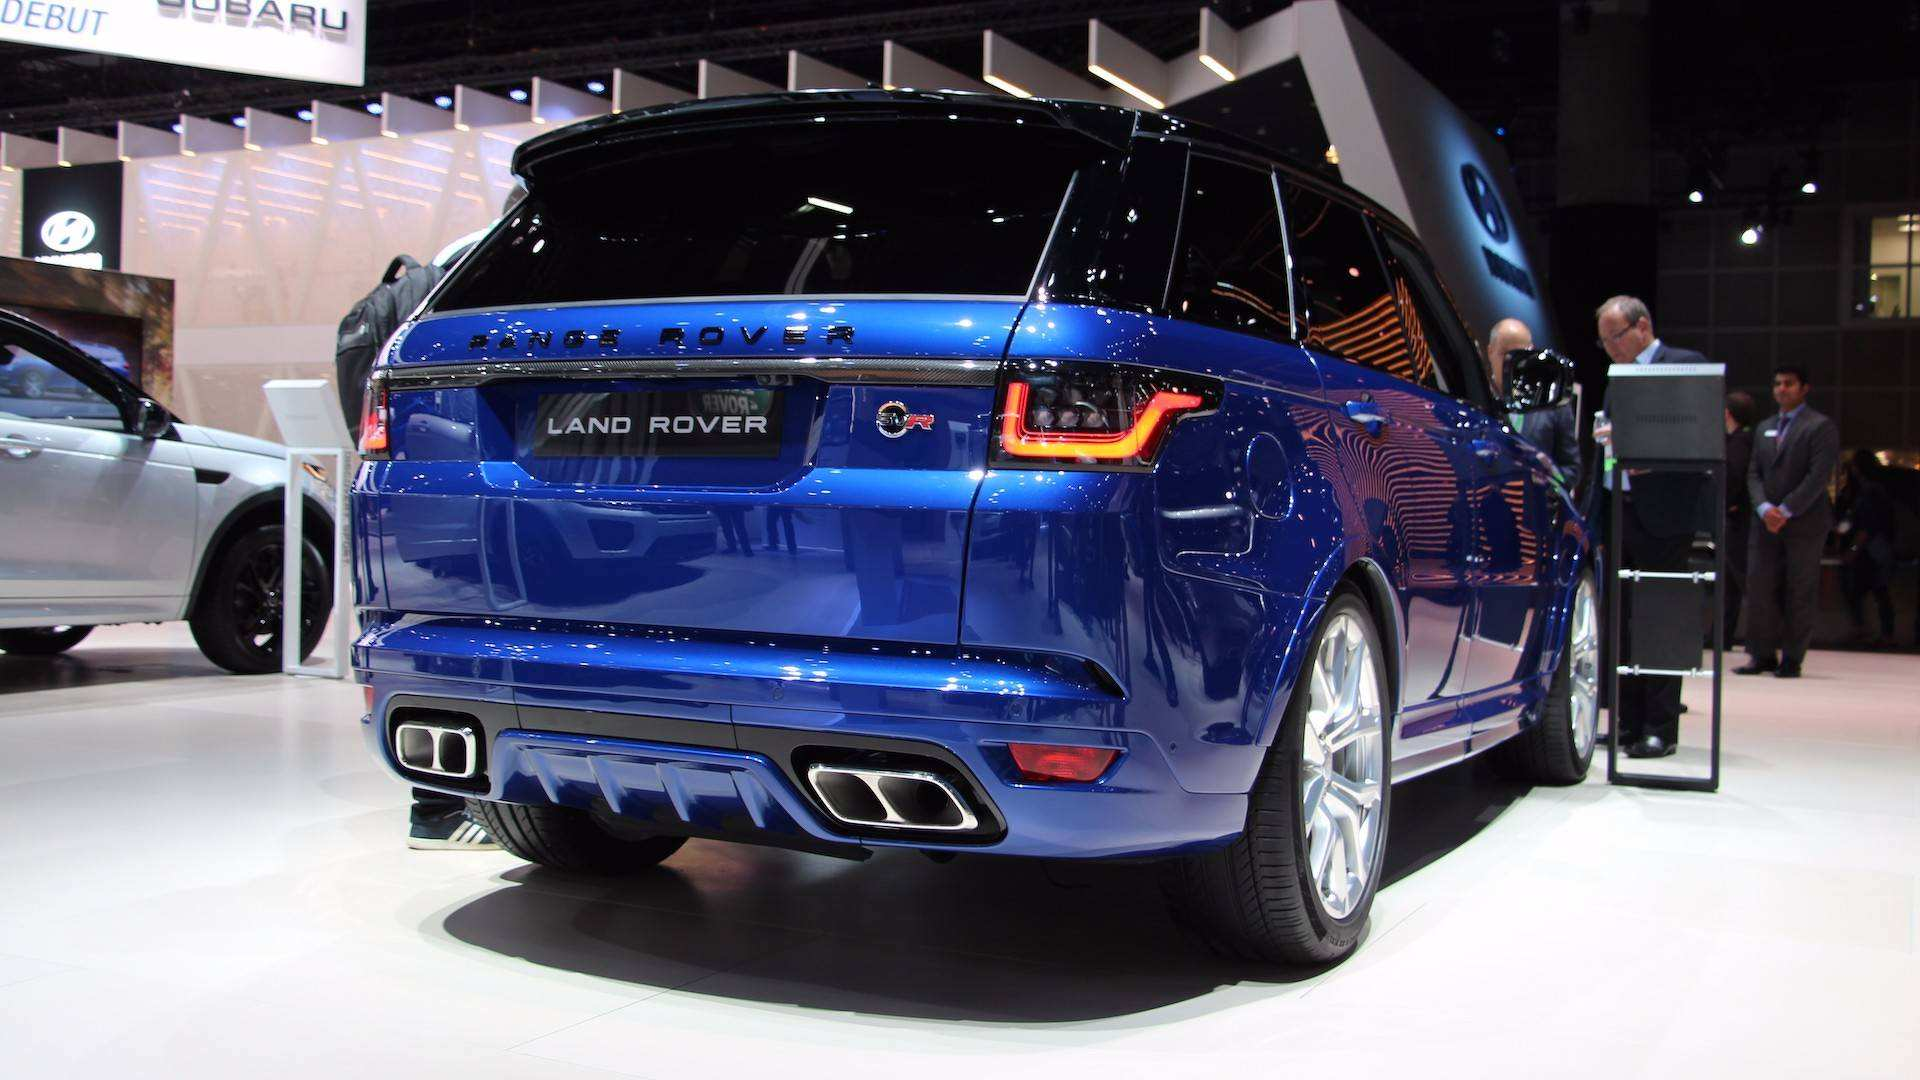 43 Great 2019 Land Rover Svr Configurations for 2019 Land Rover Svr